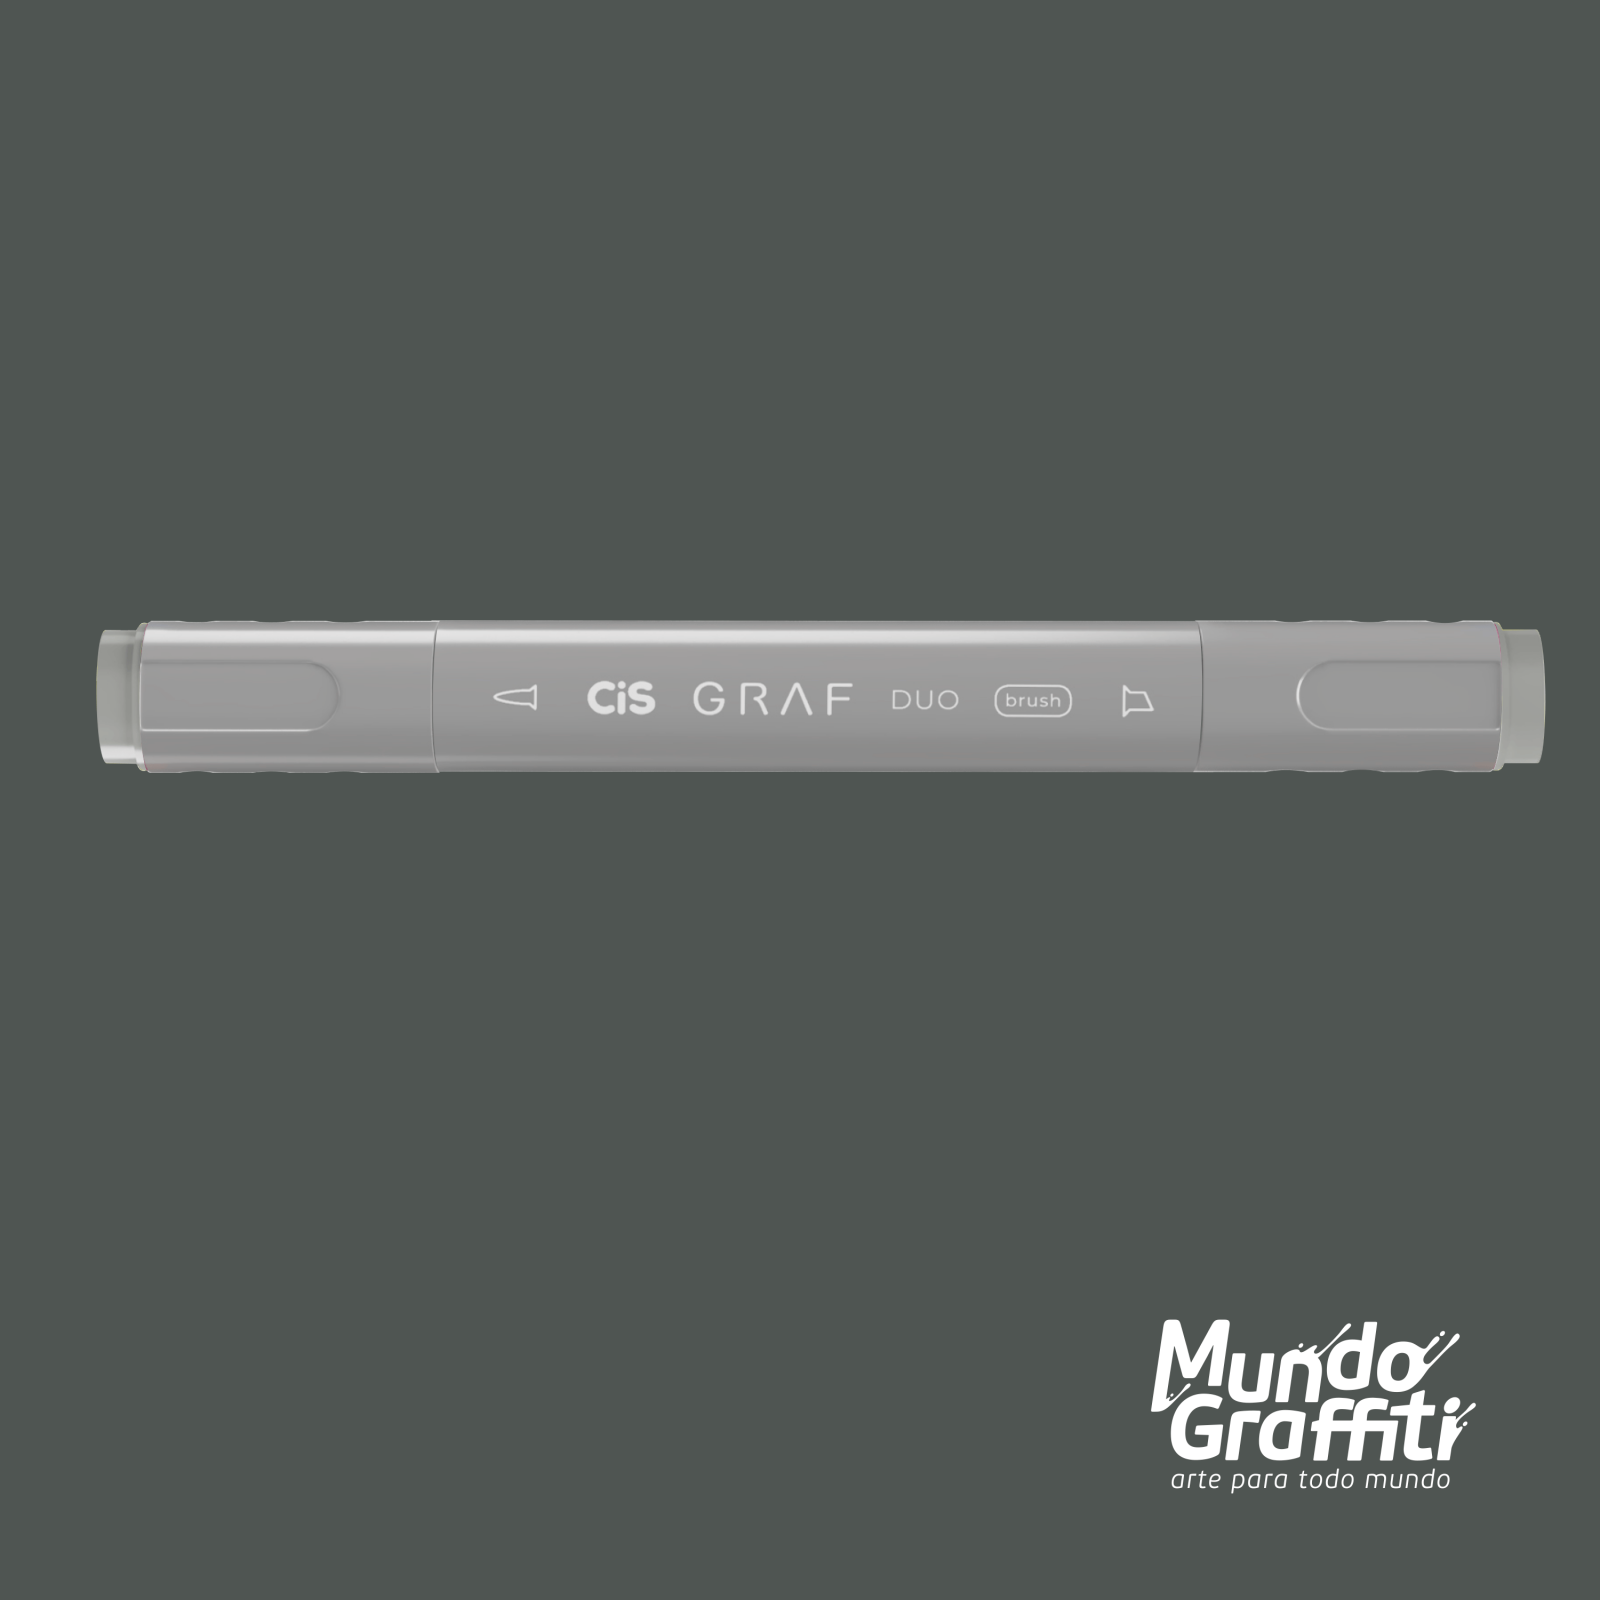 Marcador Cis Graf Duo Brush Cool Grey CG5 - Mundo Graffiti